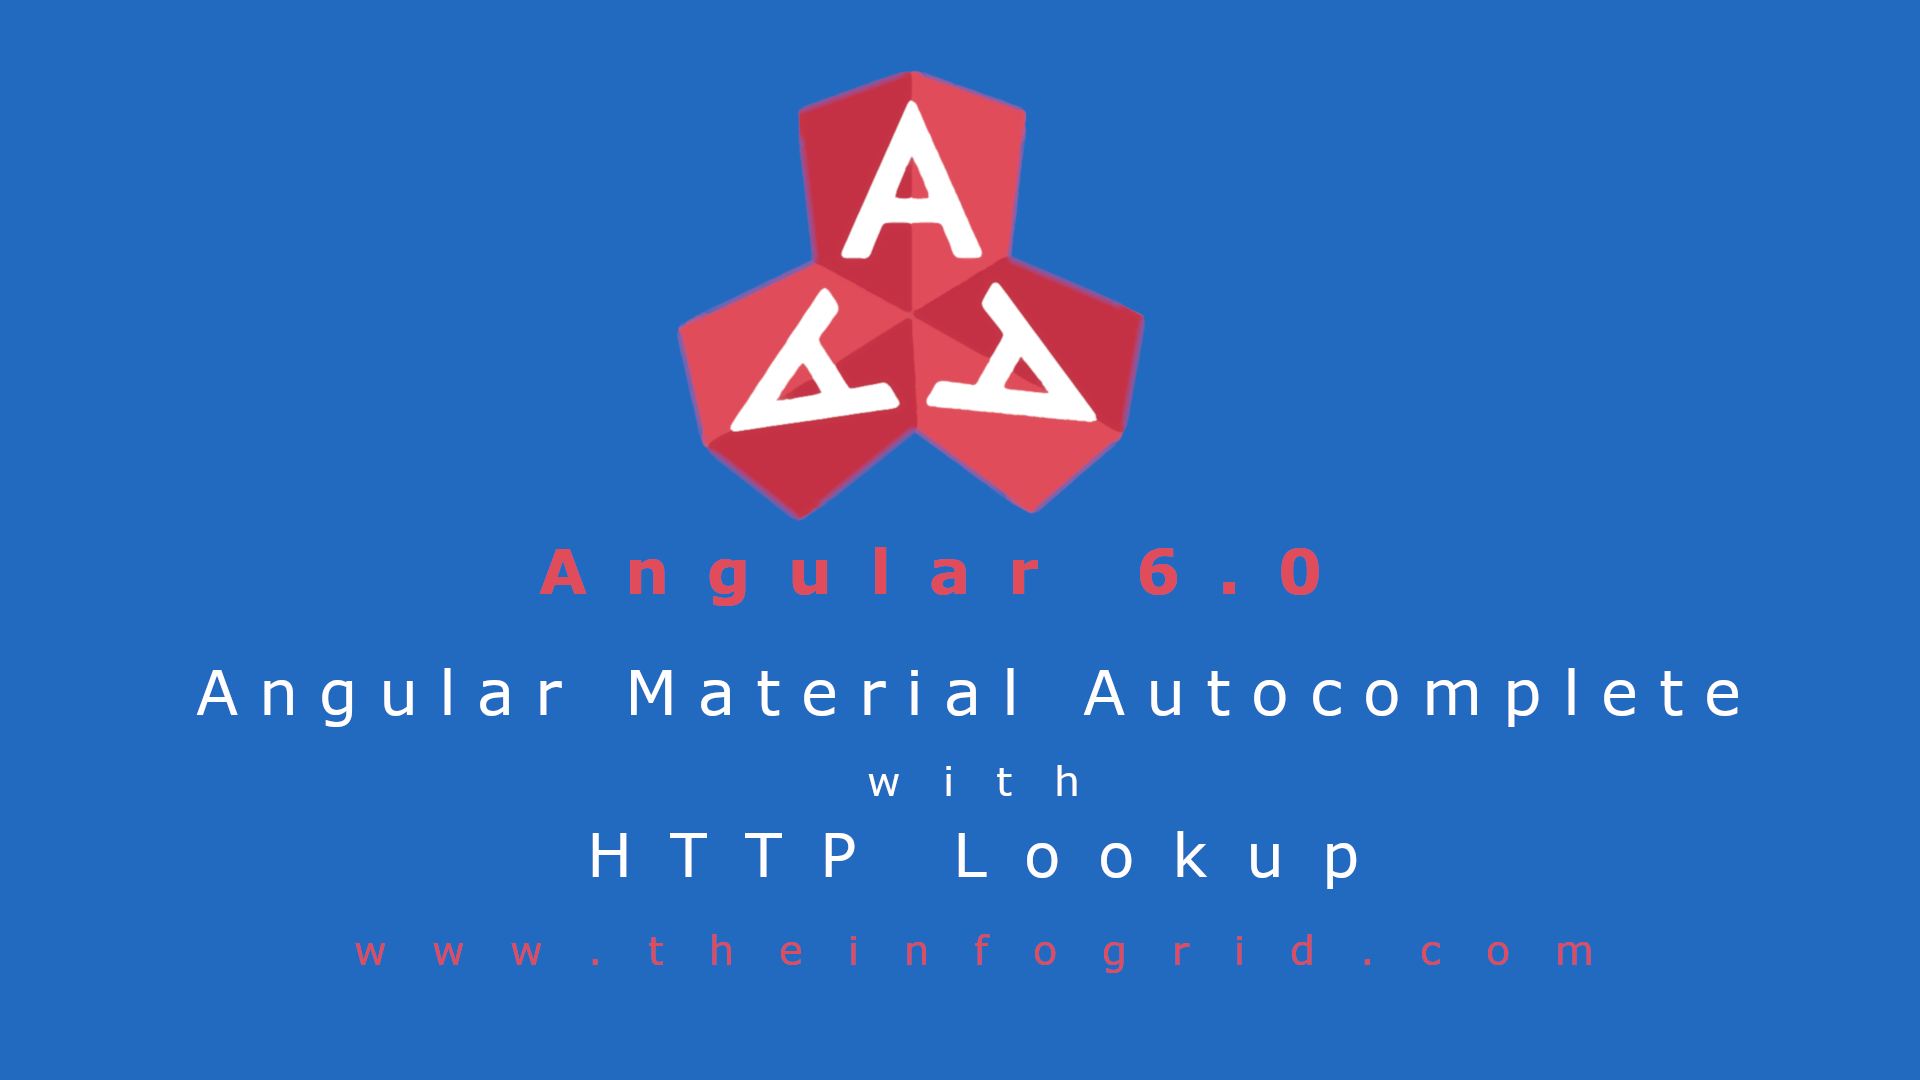 Angular Material Autocomplete with HTTP Lookup | Coding Latte